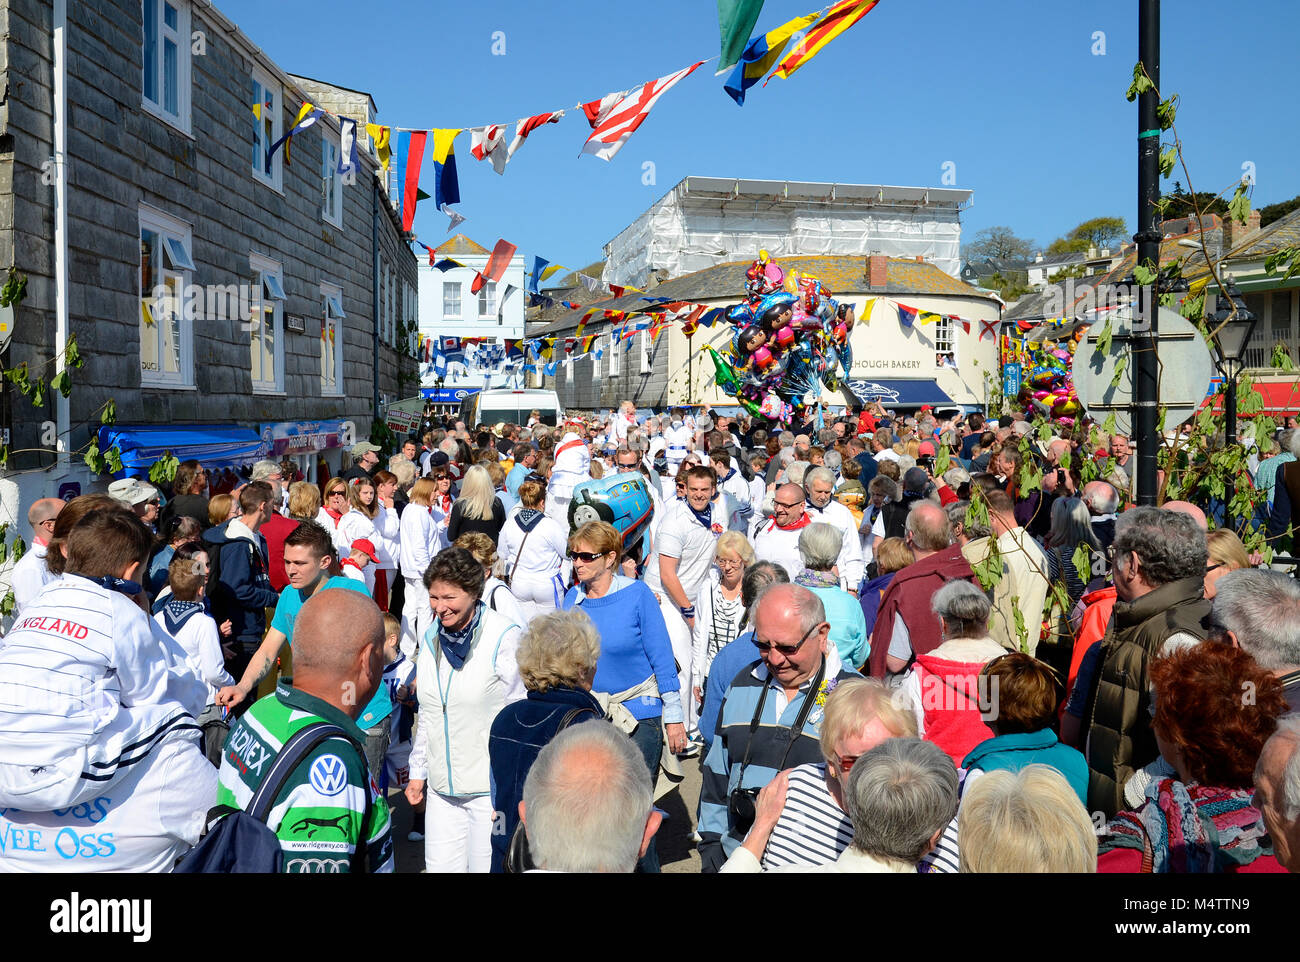 "the streets of padstow in cornwall, england, uk, are crowded with revellers during the annual may day ""obby oss"" - Stock Image"